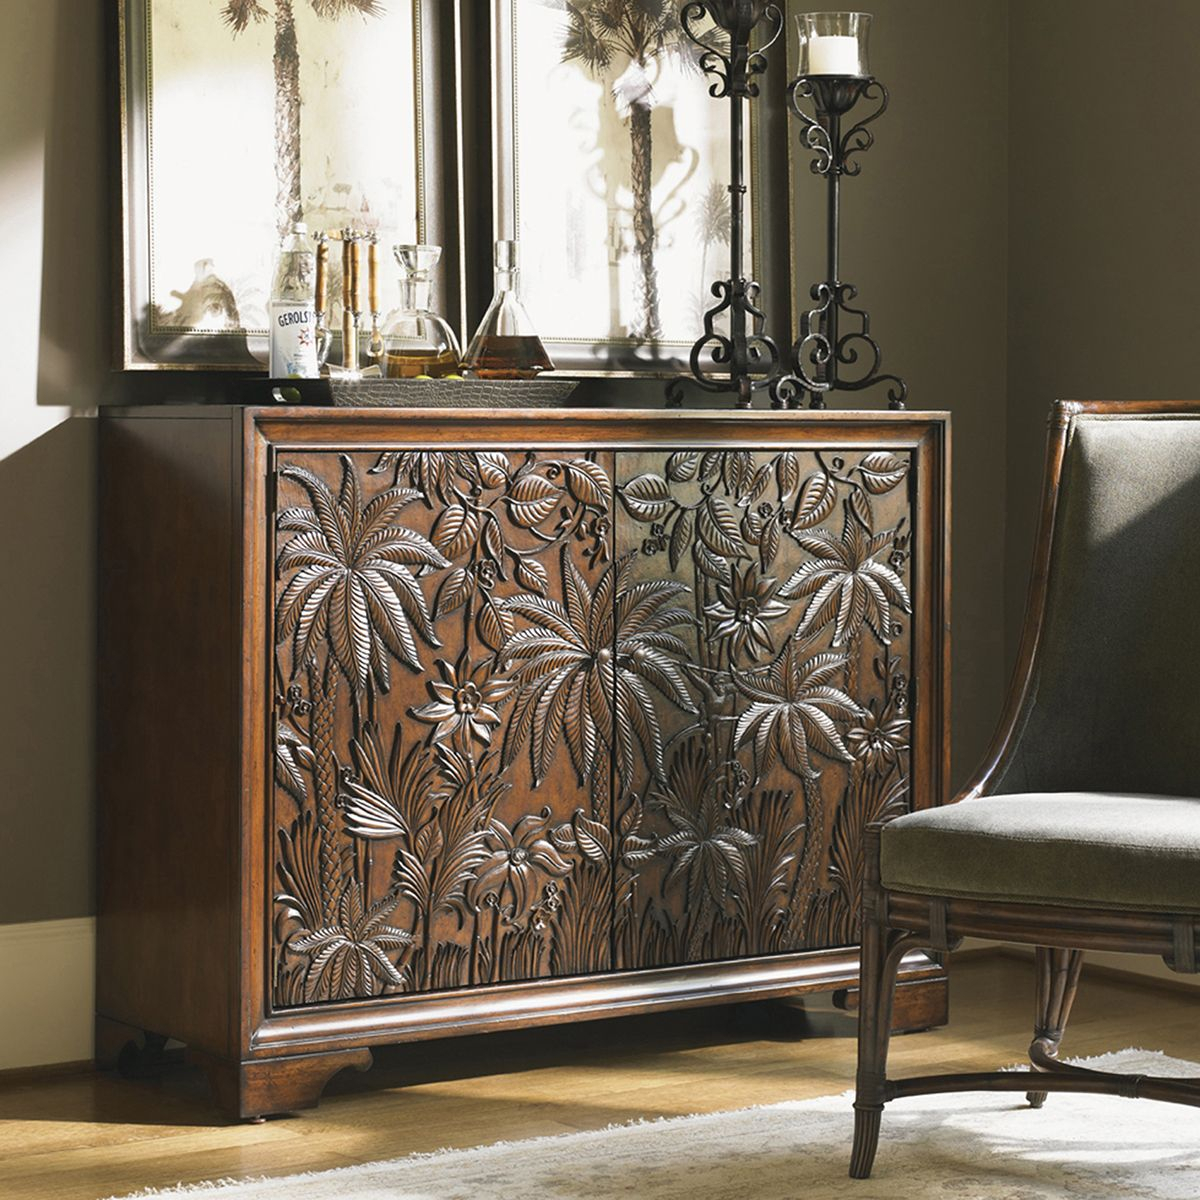 Lexington Landara Balboa Carved Door Chest 545 973   Tommy Bamaha With Regard To Balboa Carved Console Tables (View 5 of 30)